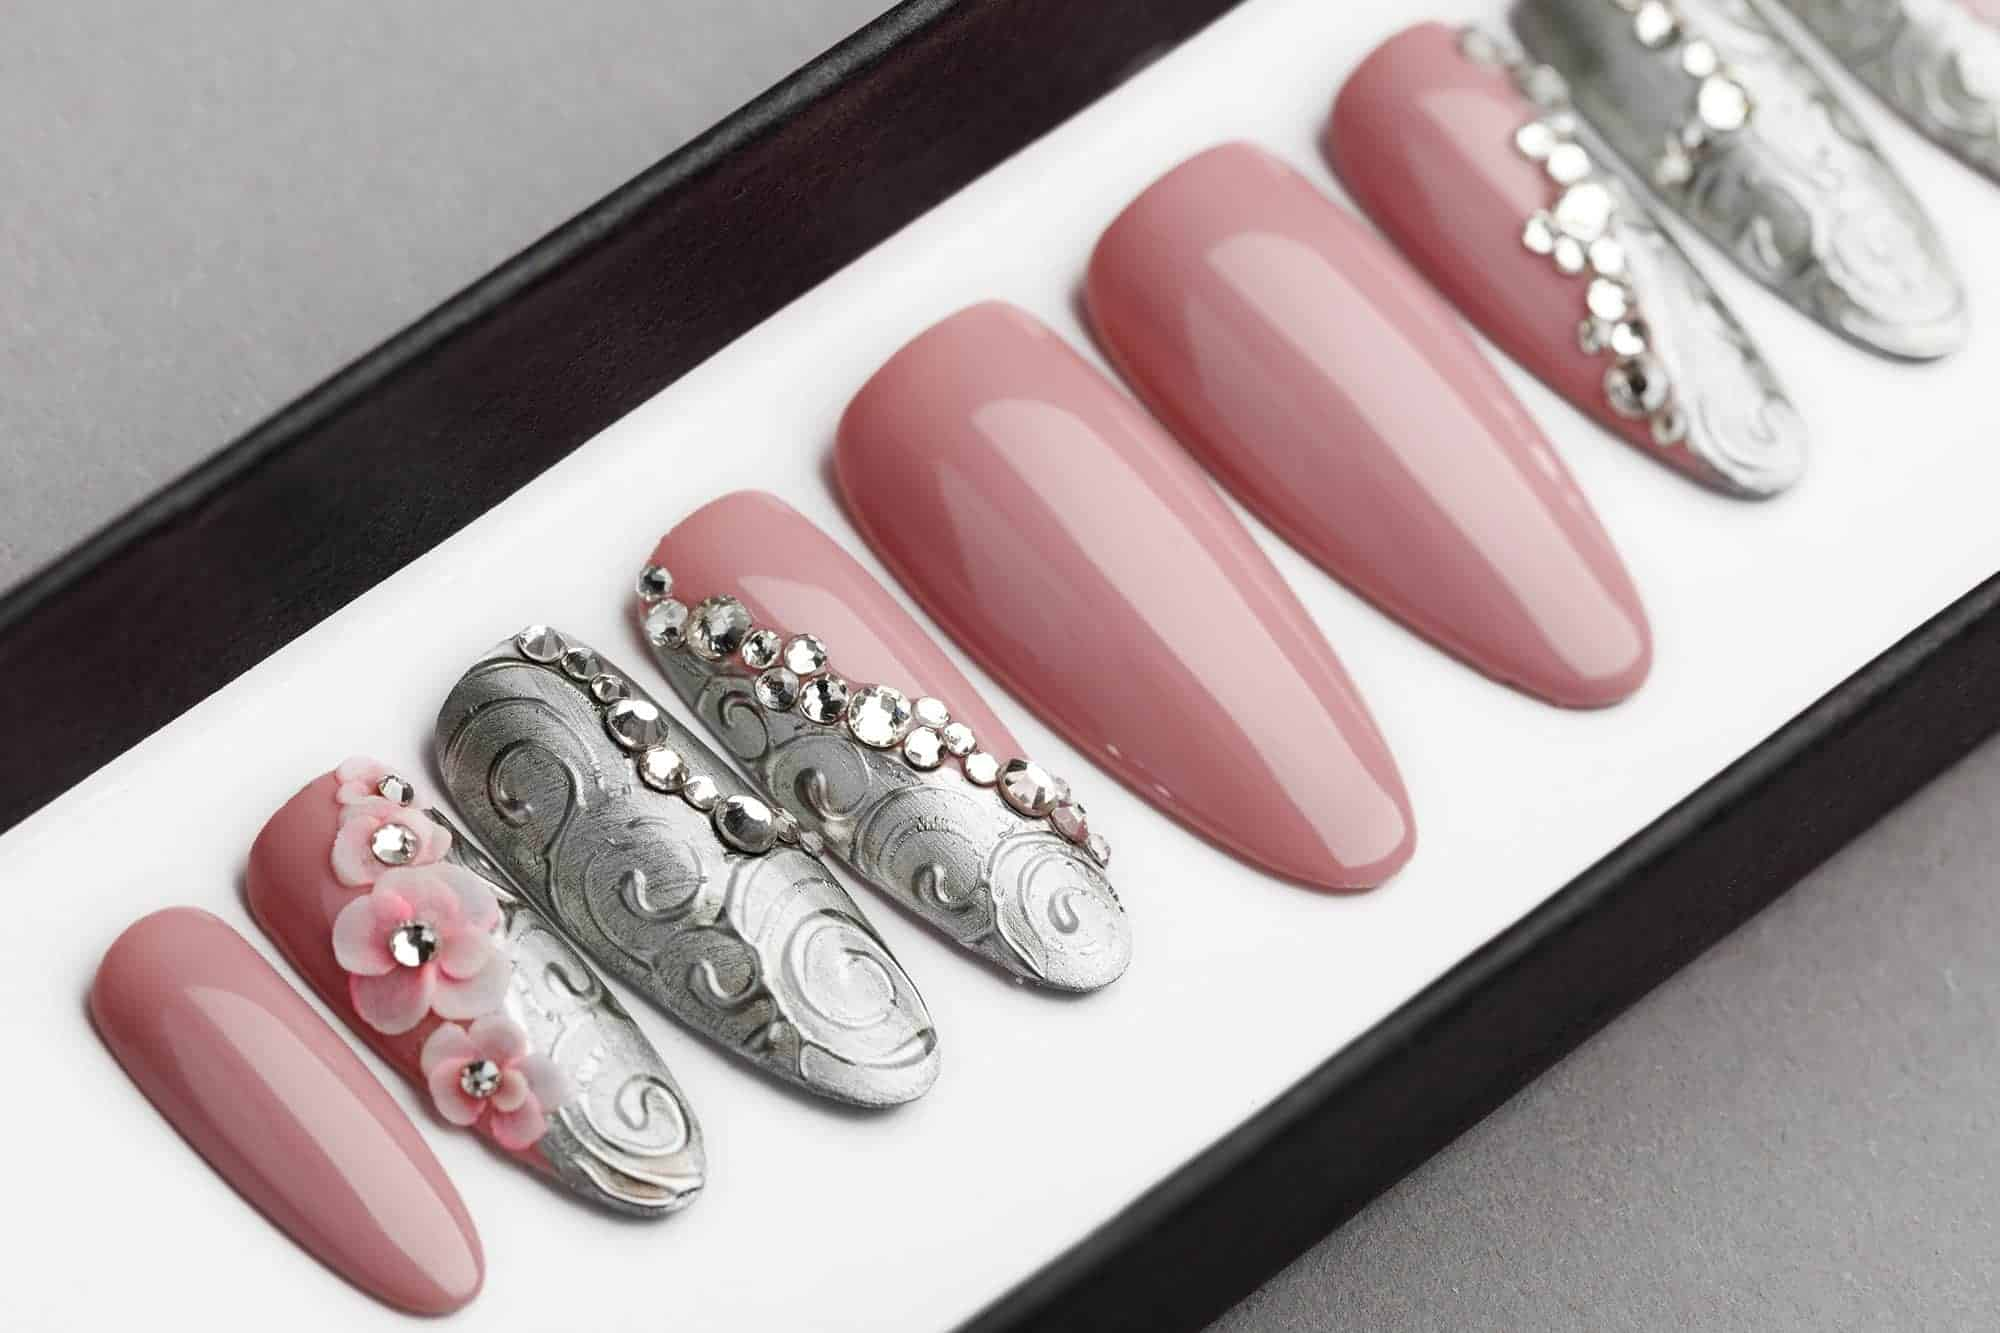 Silver Laces Press on Nails with Swarovski & Acrylic 3D